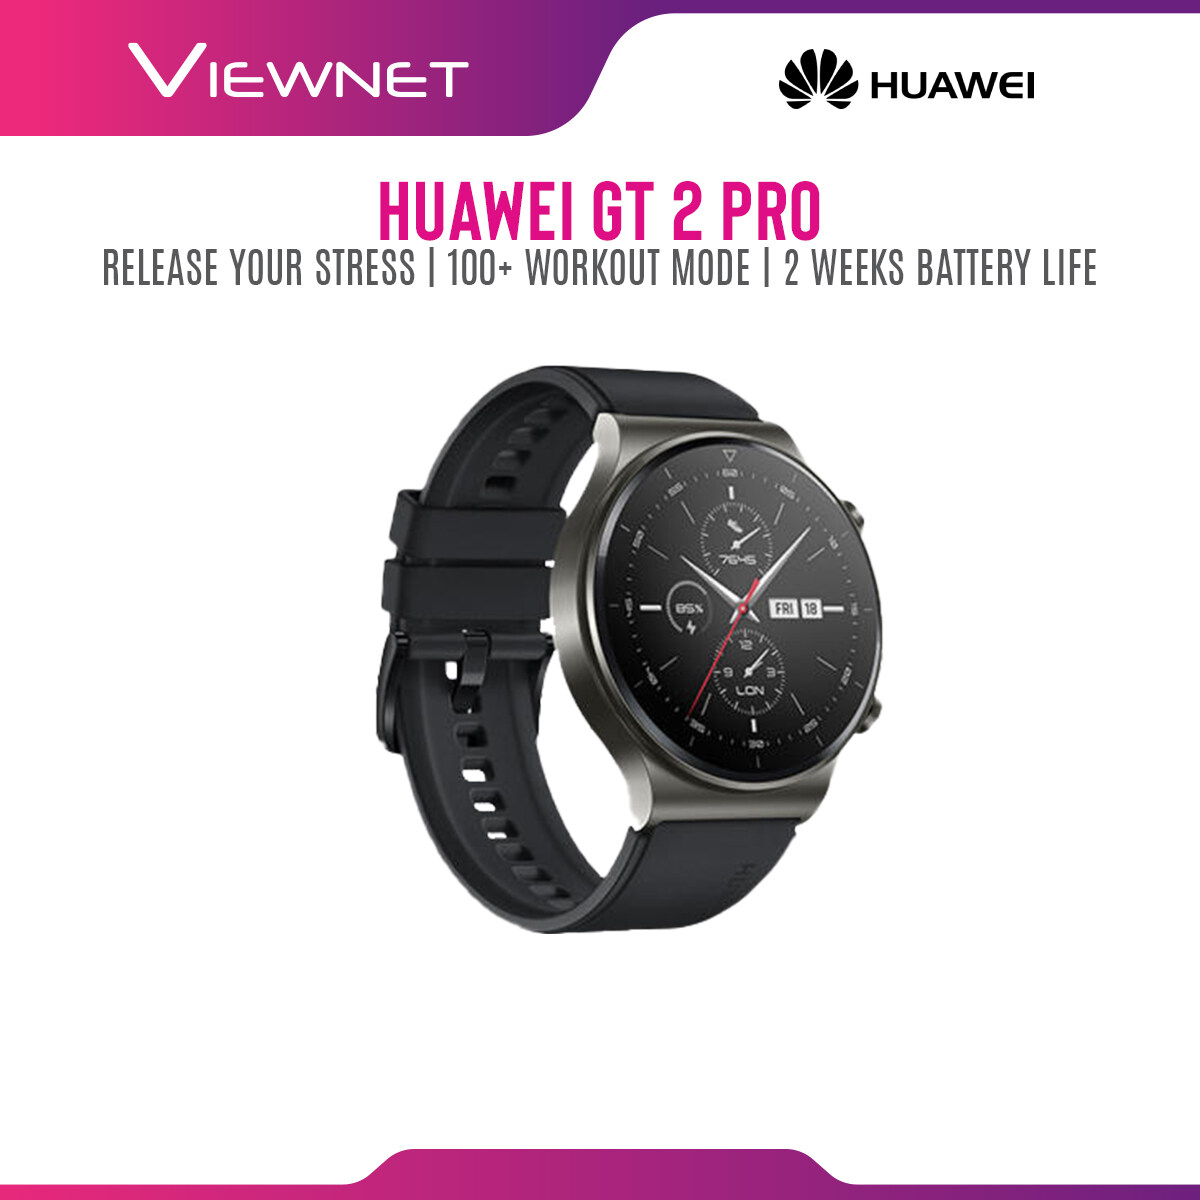 Huawei Watch GT 2 Pro / GT2 Pro Smartwatch [Answer Call  Music Playing  SPO2 Supported  100+ Workout Modes] 1 Year Warranty By Huawei Malaysia